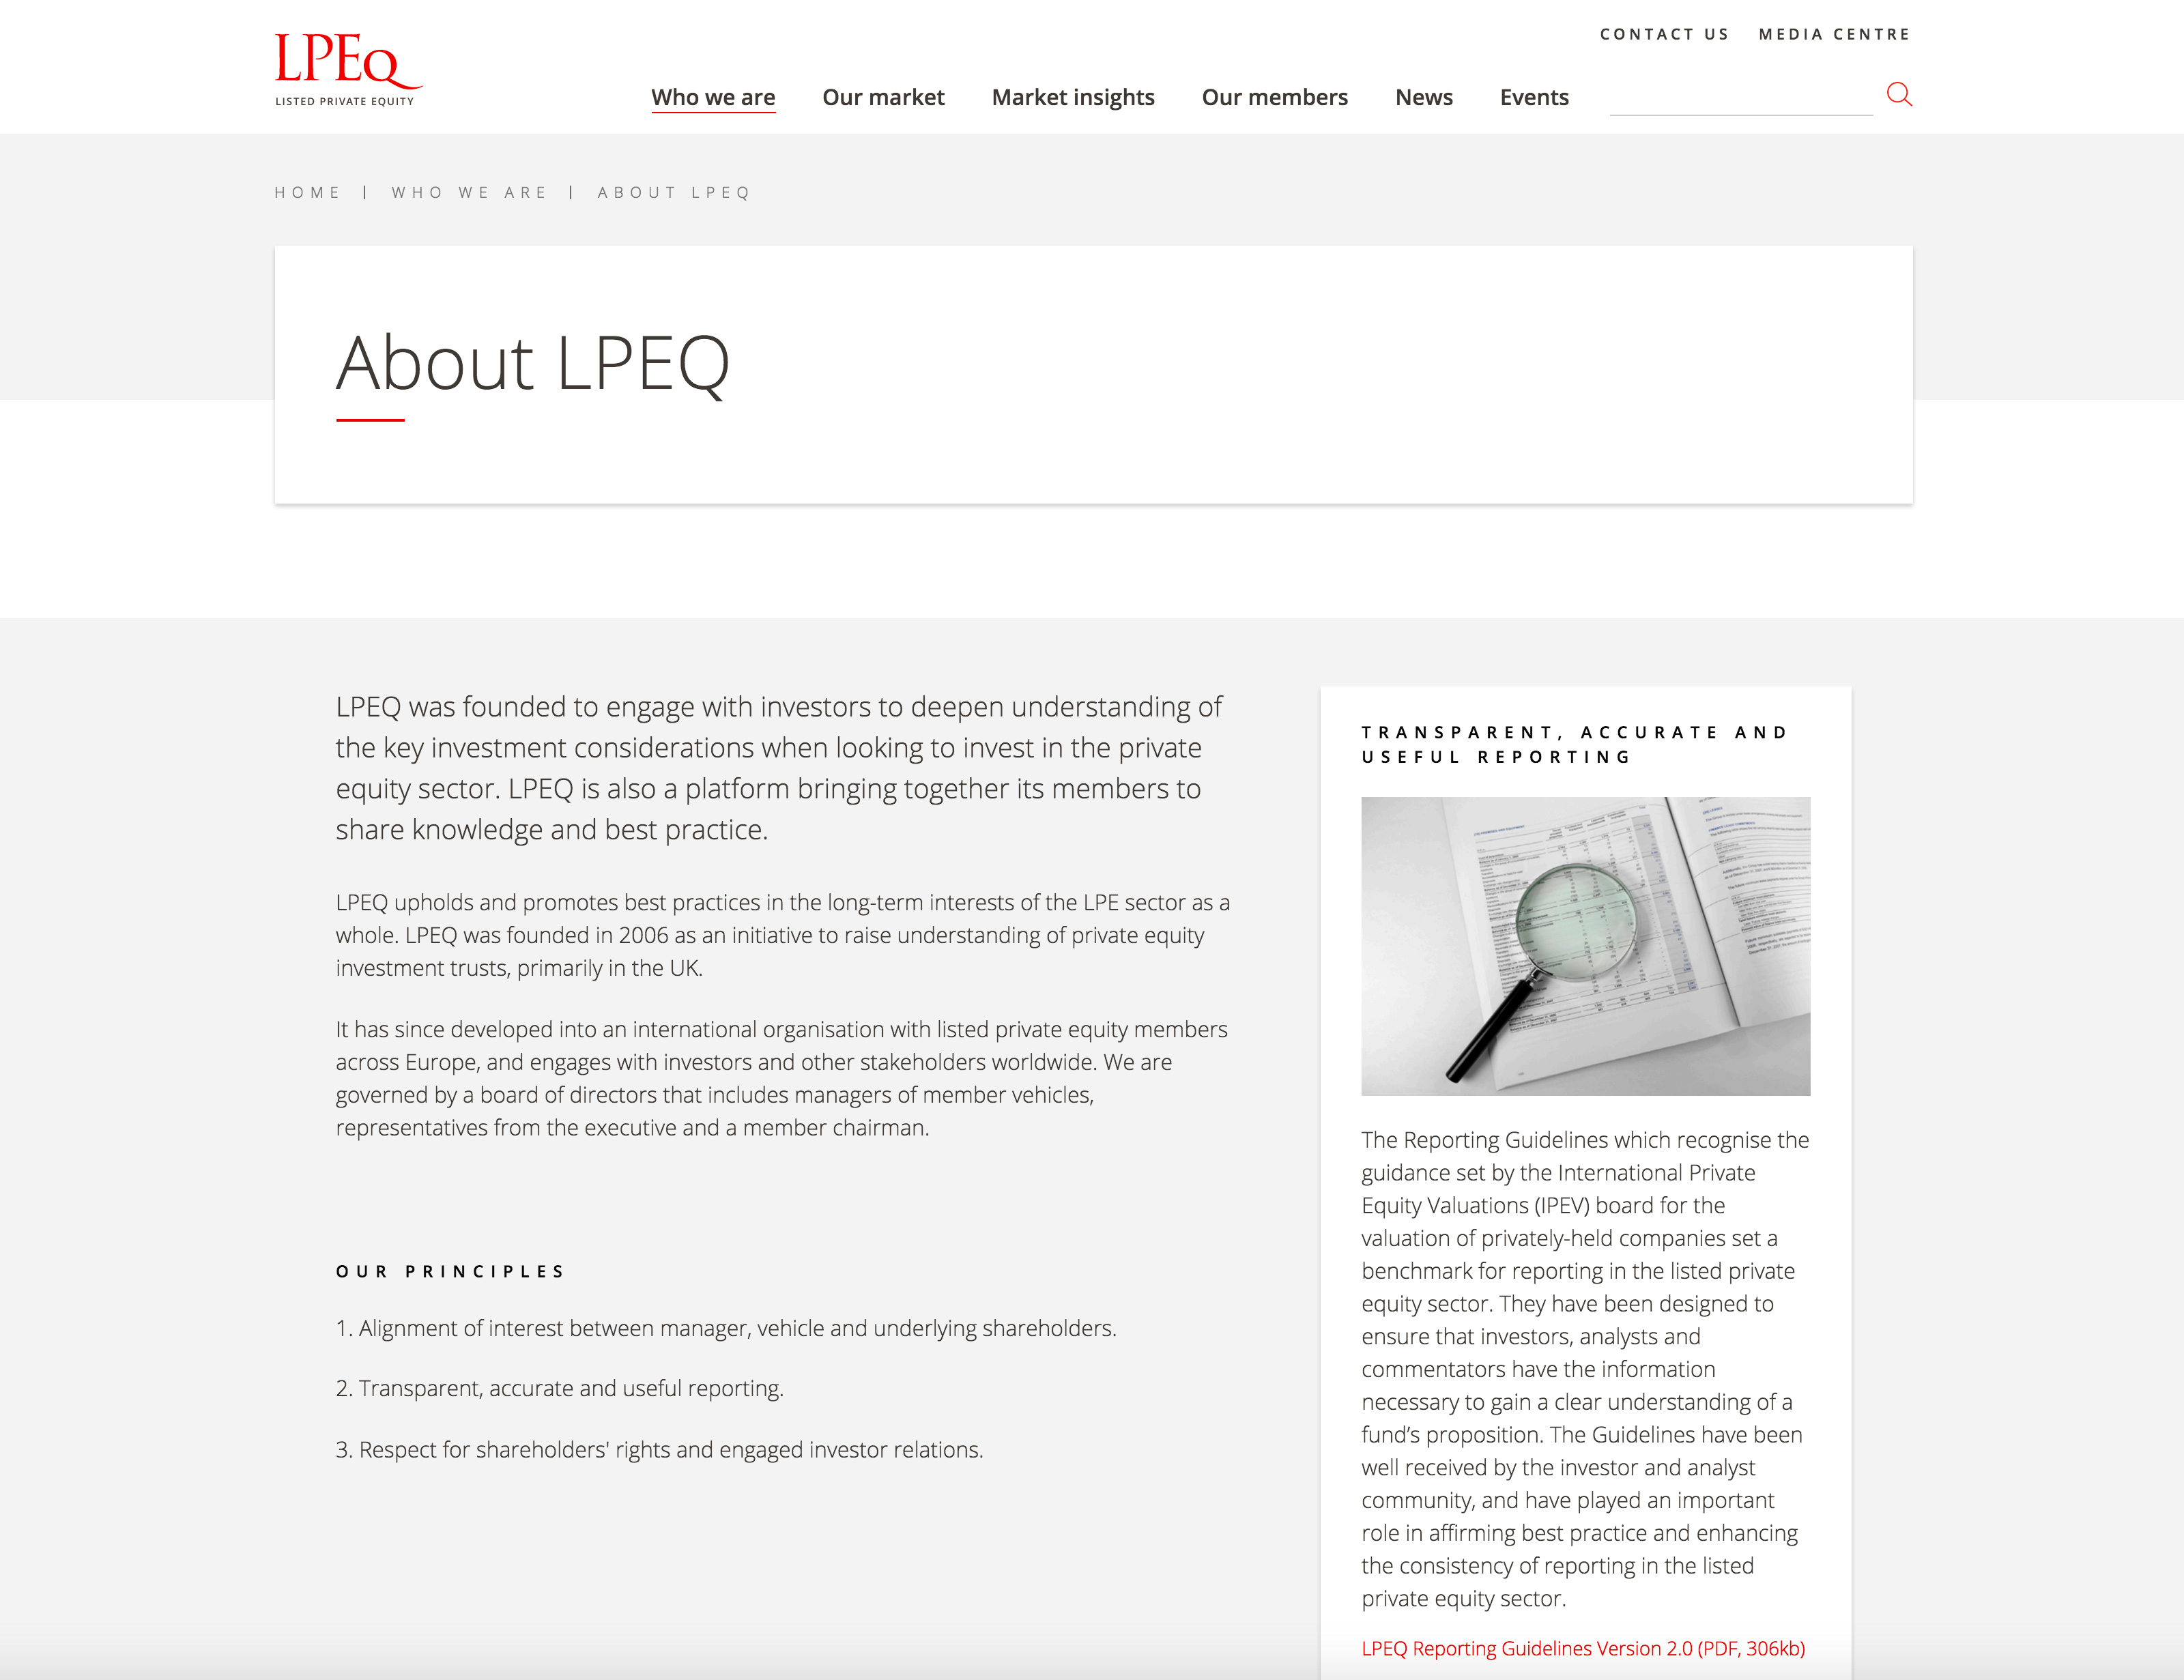 Screenshot of LPEQ about page on desktop